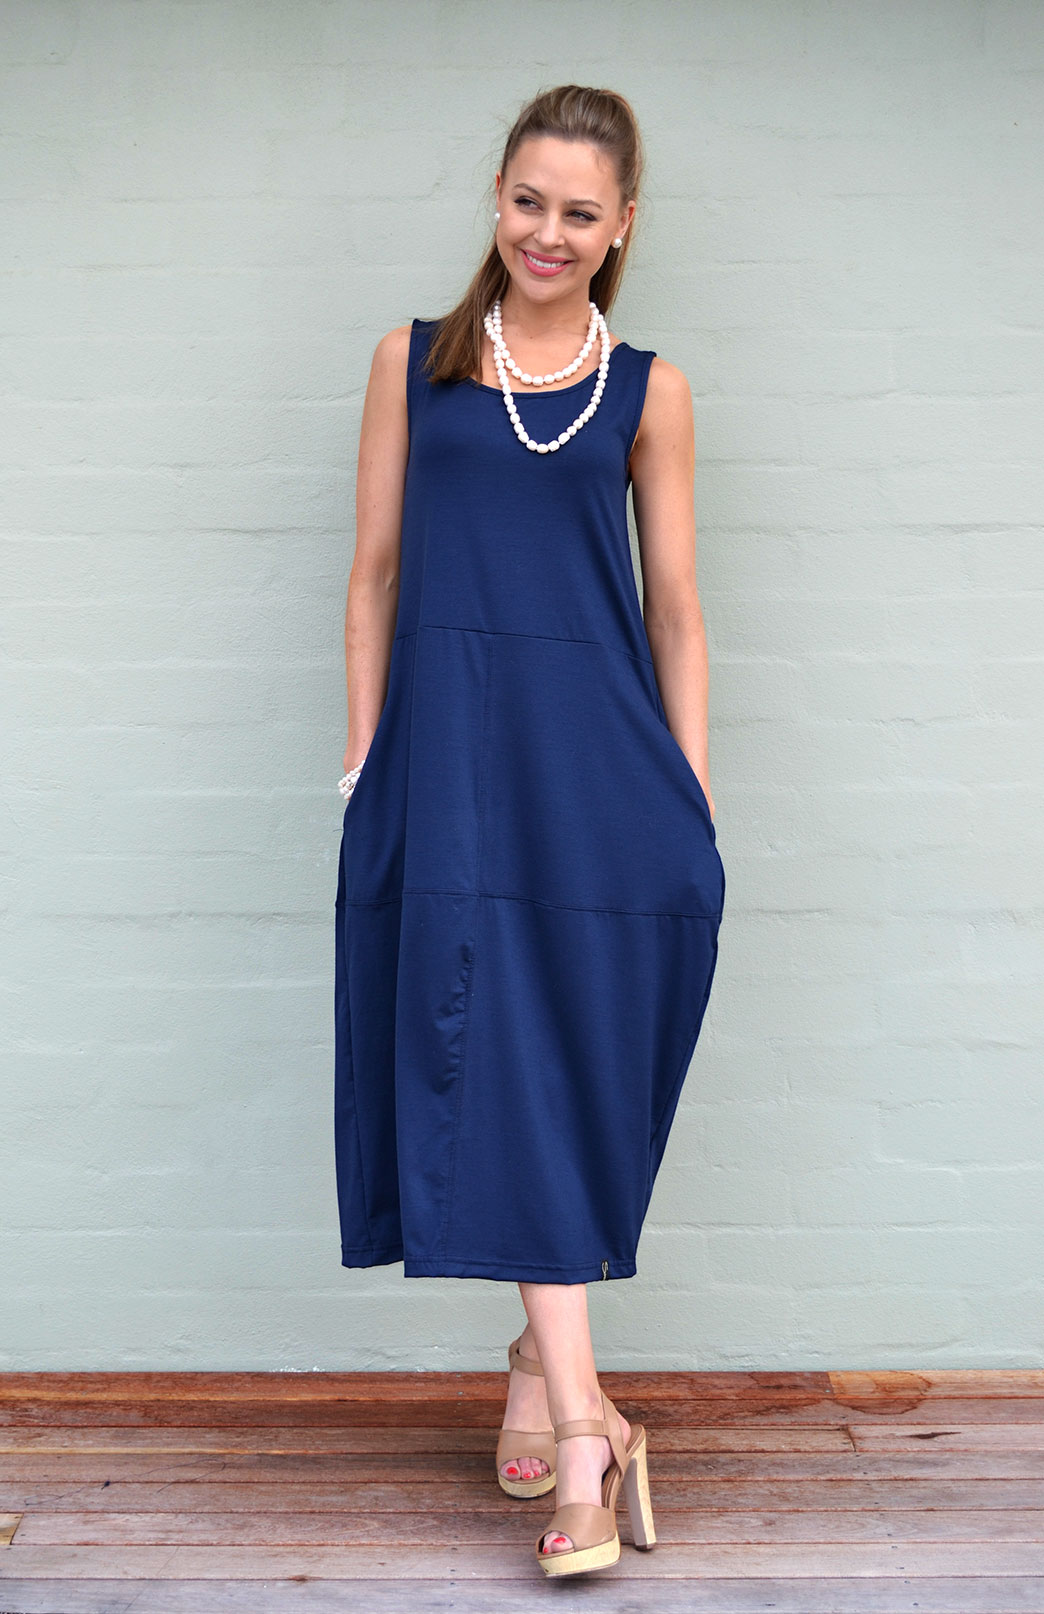 Rosebud Dress - Women's Indigo Blue Sleeveless Wool Dress with Side Pockets - Smitten Merino Tasmania Australia